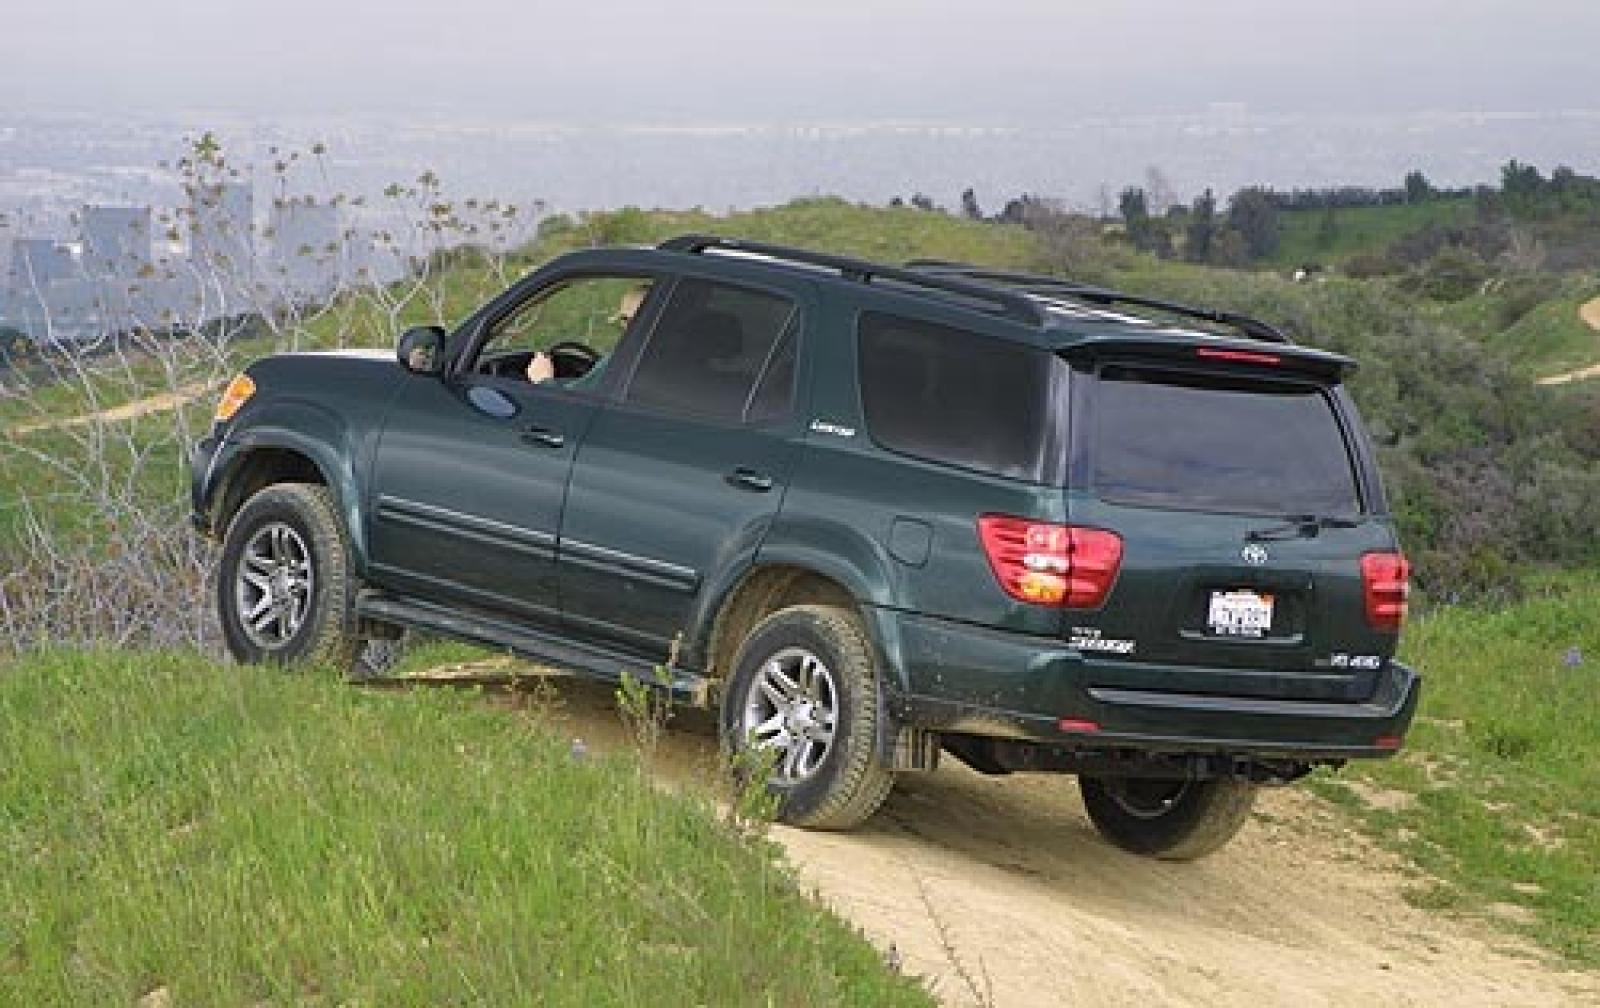 2005 toyota sequoia information and photos zombiedrive. Black Bedroom Furniture Sets. Home Design Ideas